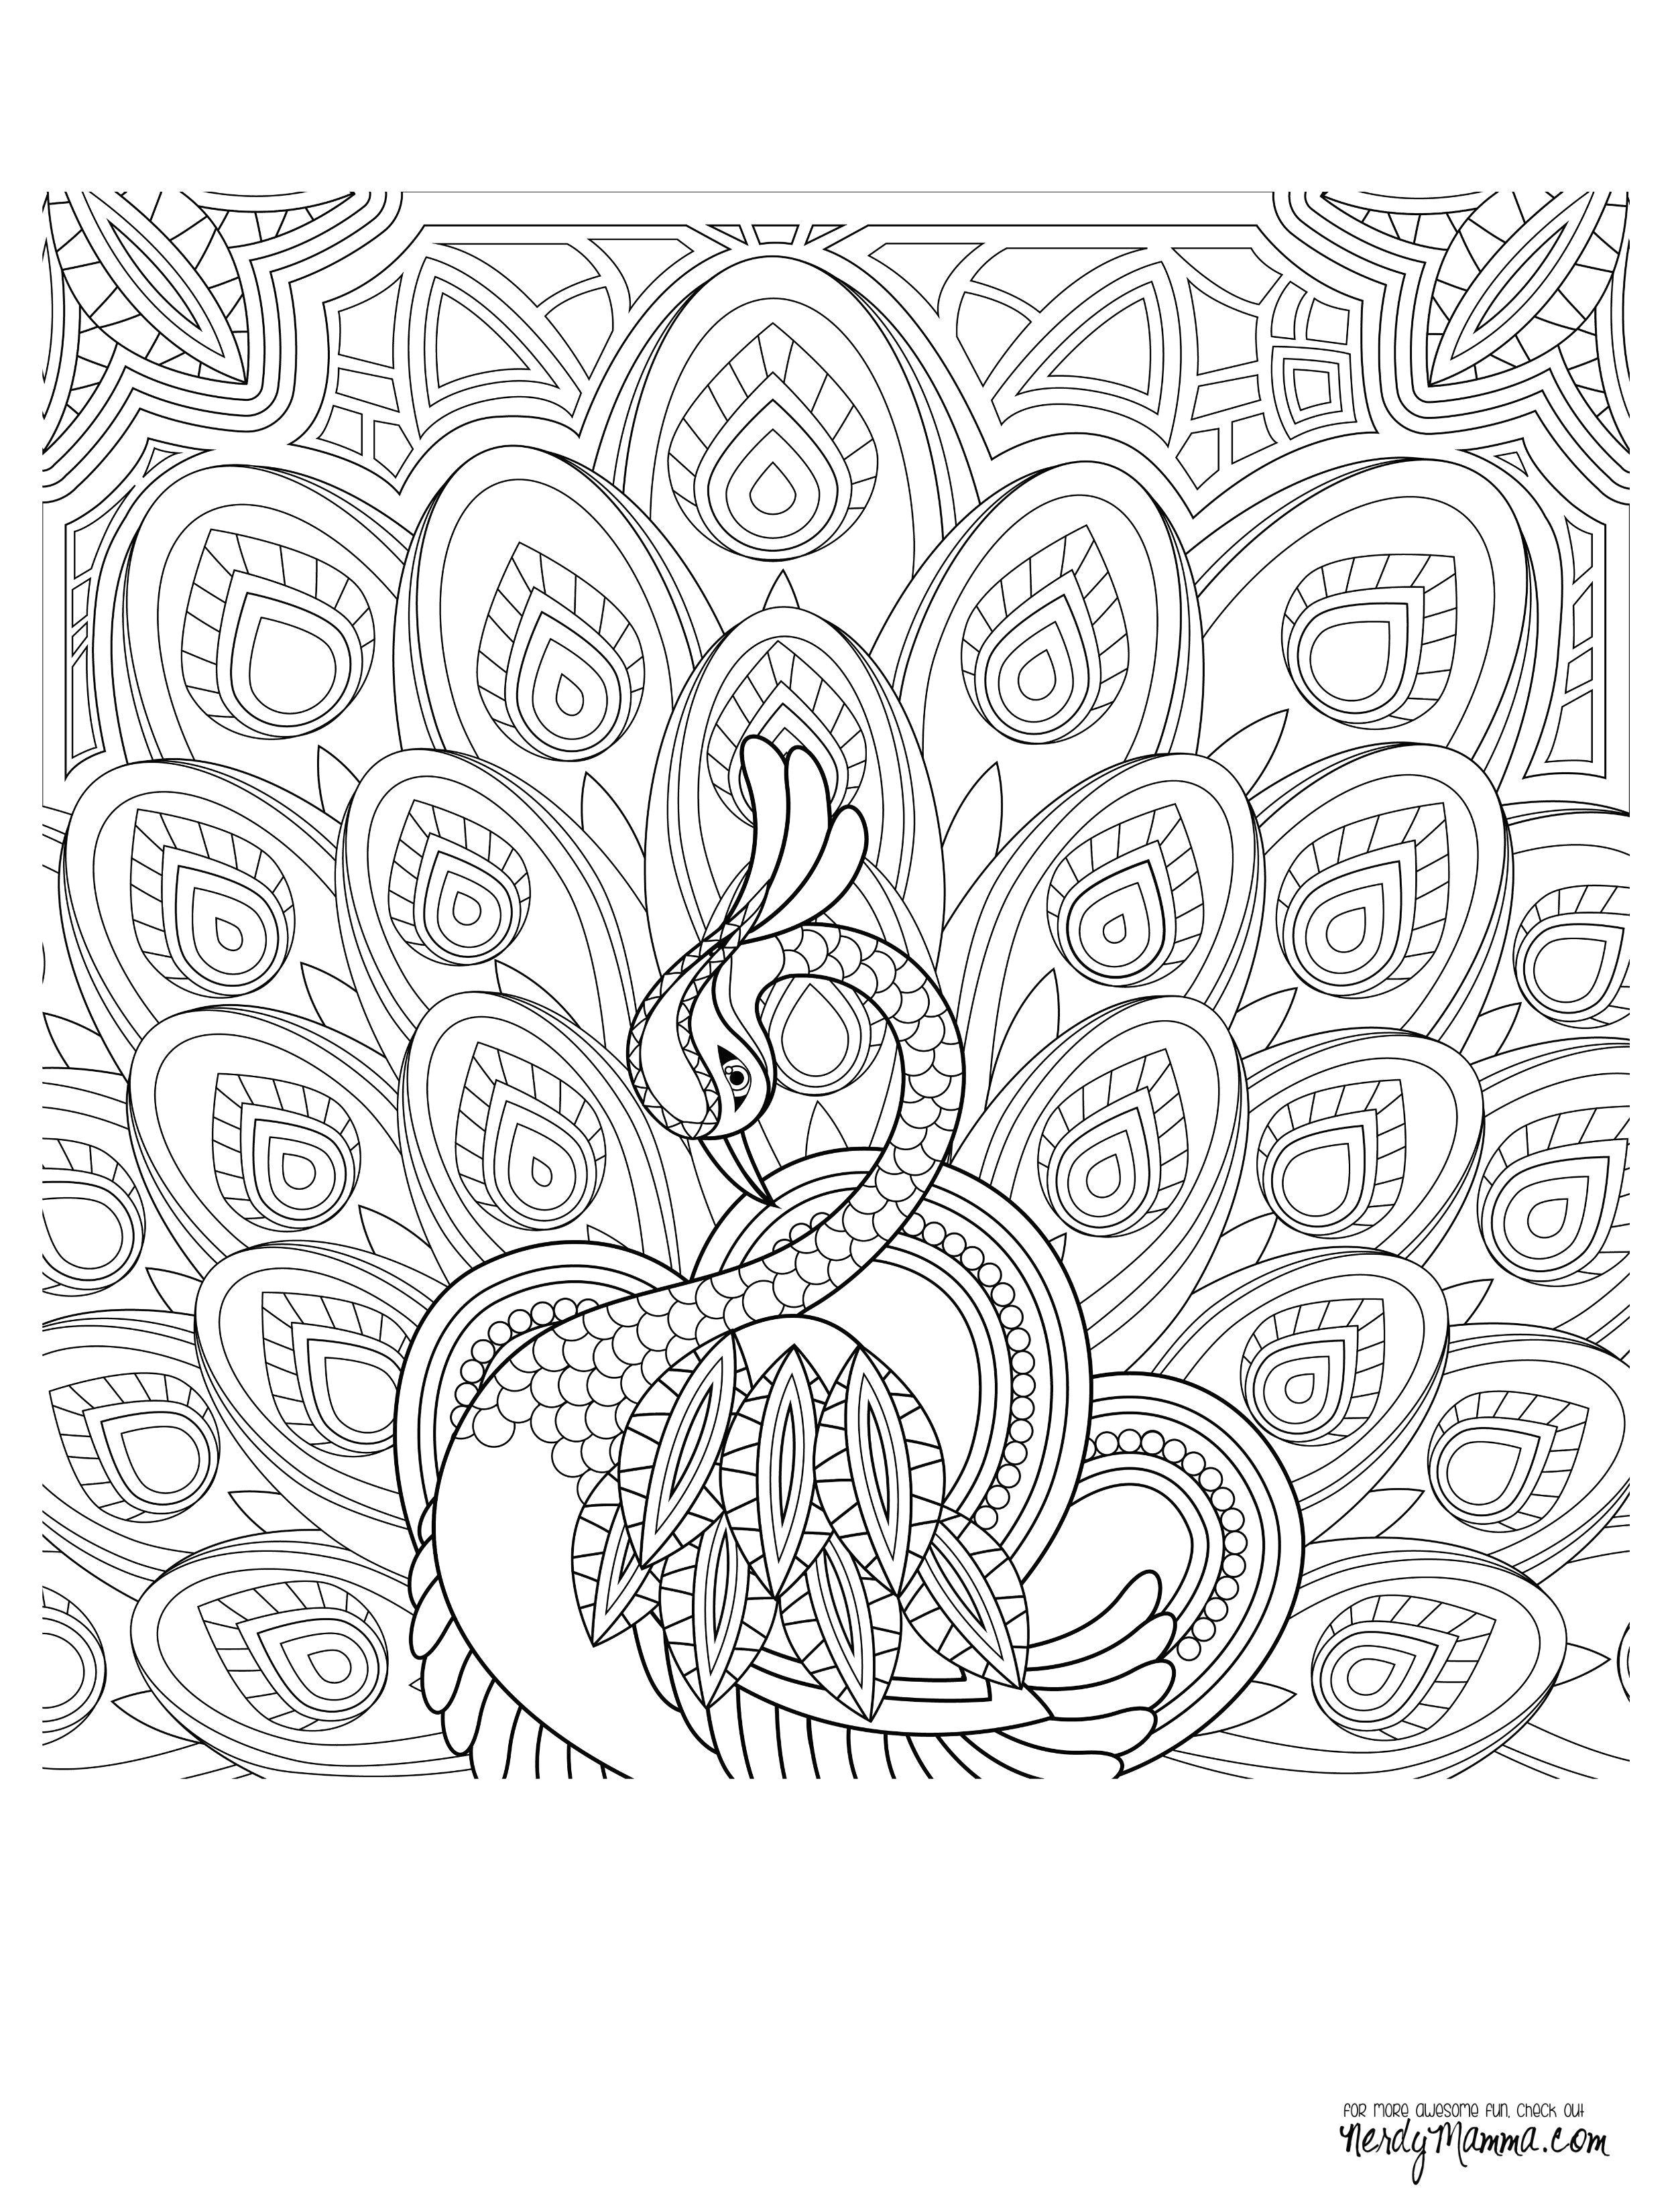 anime coloring games elegant color coloring pages fresh home coloring pages best color sheet 0d